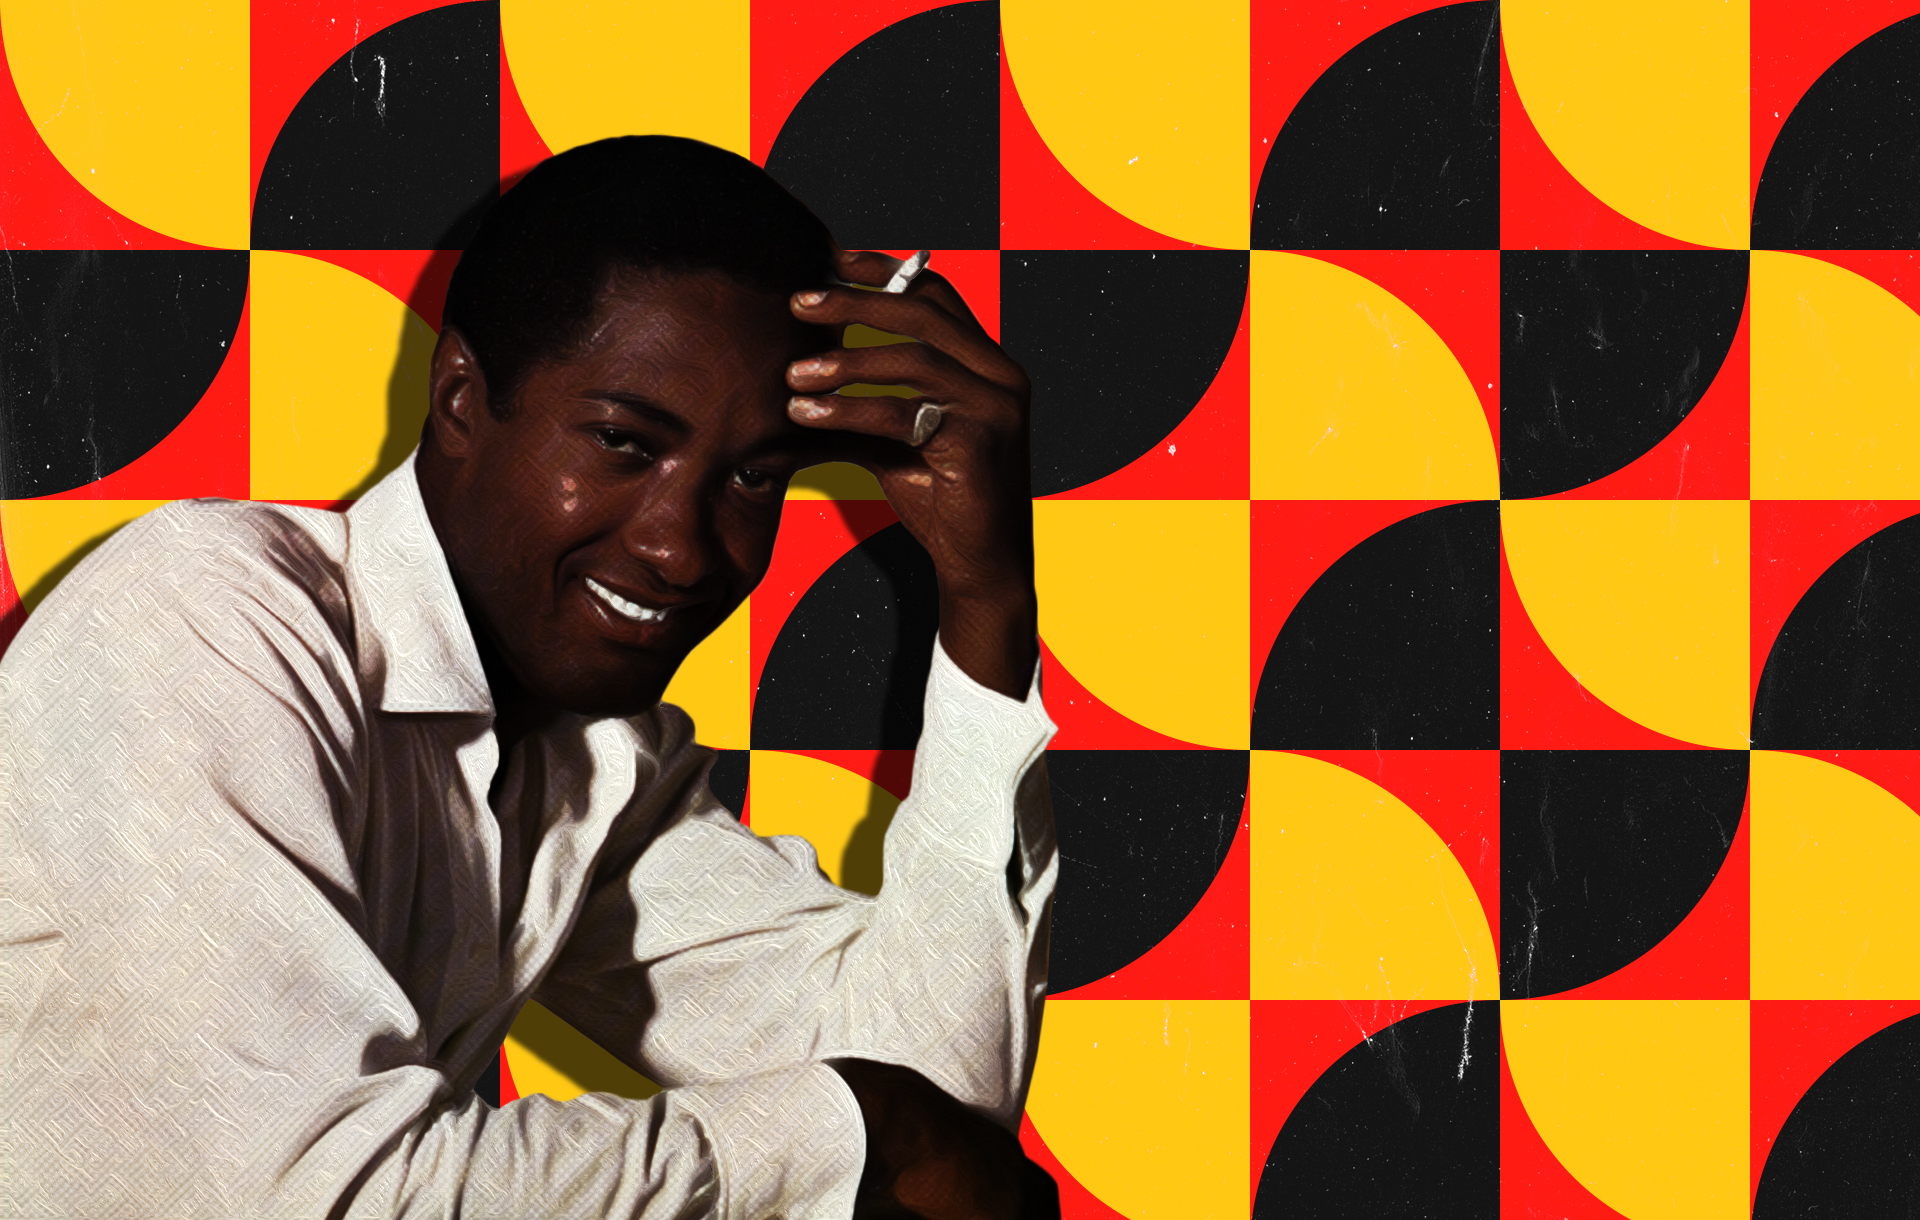 Sam Cooke - The Most Important Soul Singer in History | Features | LIVING LIFE FEARLESS